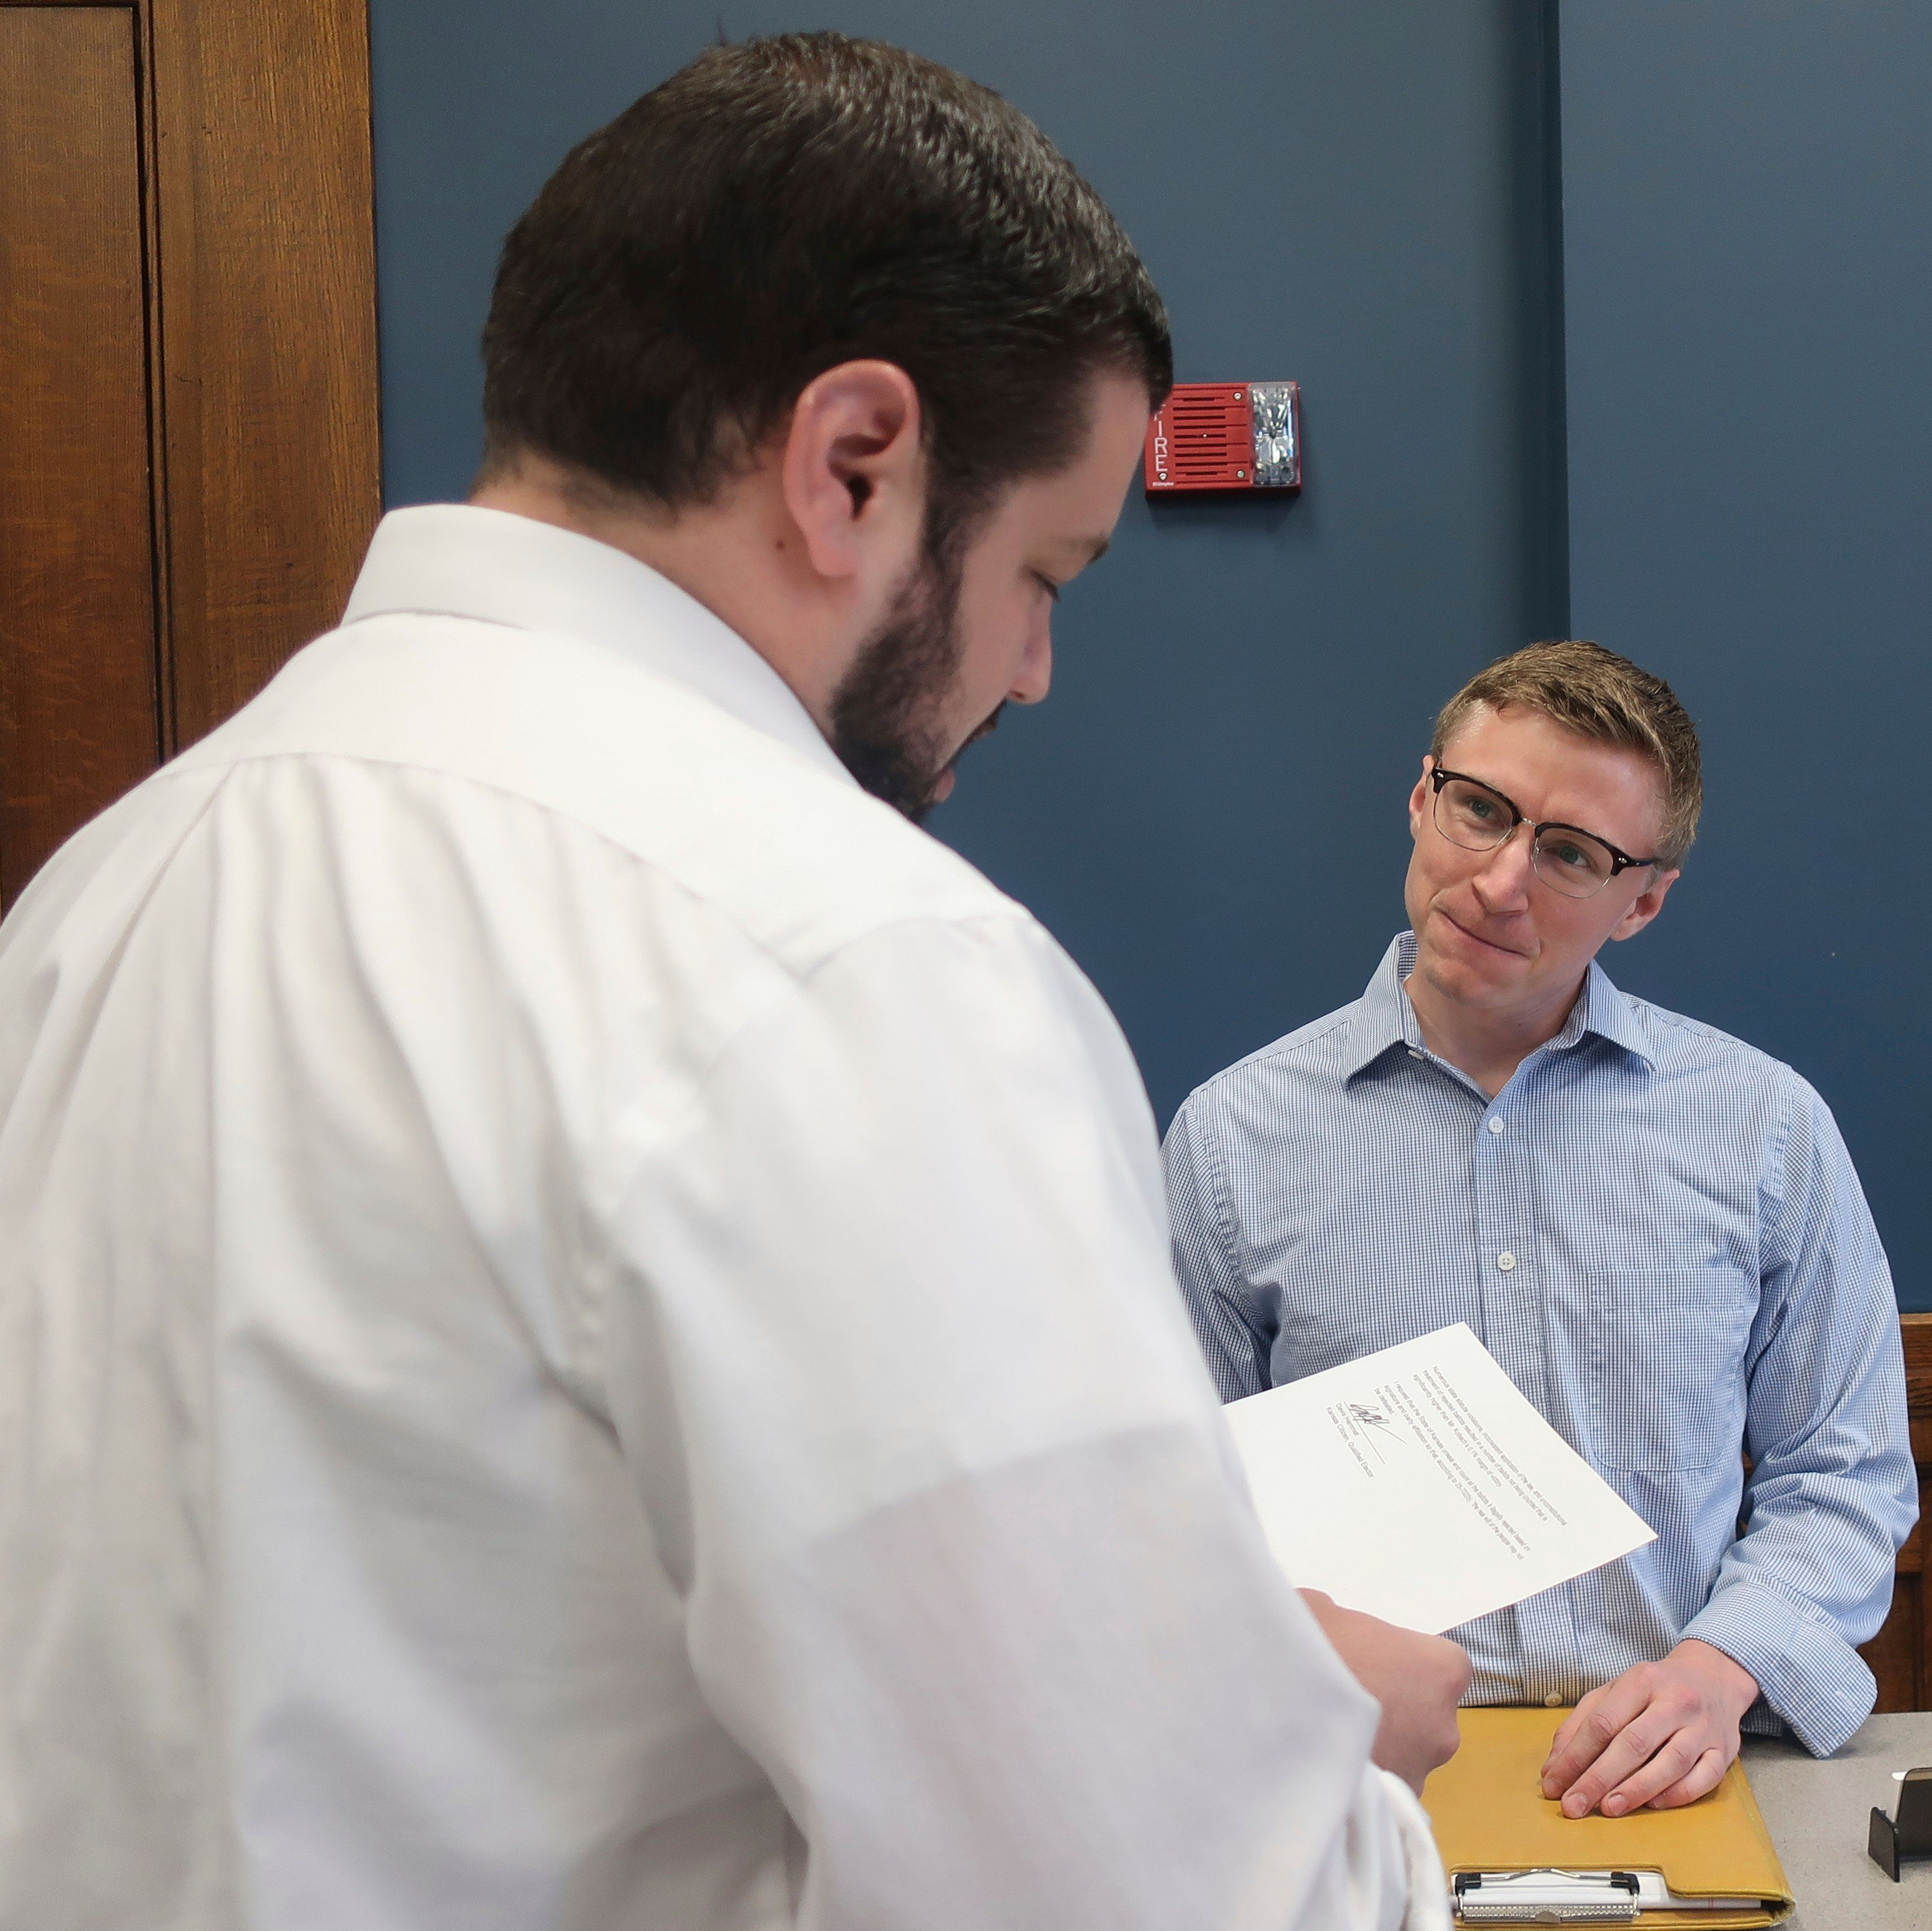 Davis Hammet, right, a Topeka, Kan., resident and liberal activist, presents his challenge to Kansas Secretary of State Kris Kobach appearing on the November ballot as the GOP nominee for governor to assistant state elections director Jameson Beckner, left, Thursday, Sept. 6, 2018, in Topeka, Kan. Hammet alleges that hundreds of legal ballots were not counted in the August primary, which Kobach won by 343 votes. (AP Photo/John Hanna)